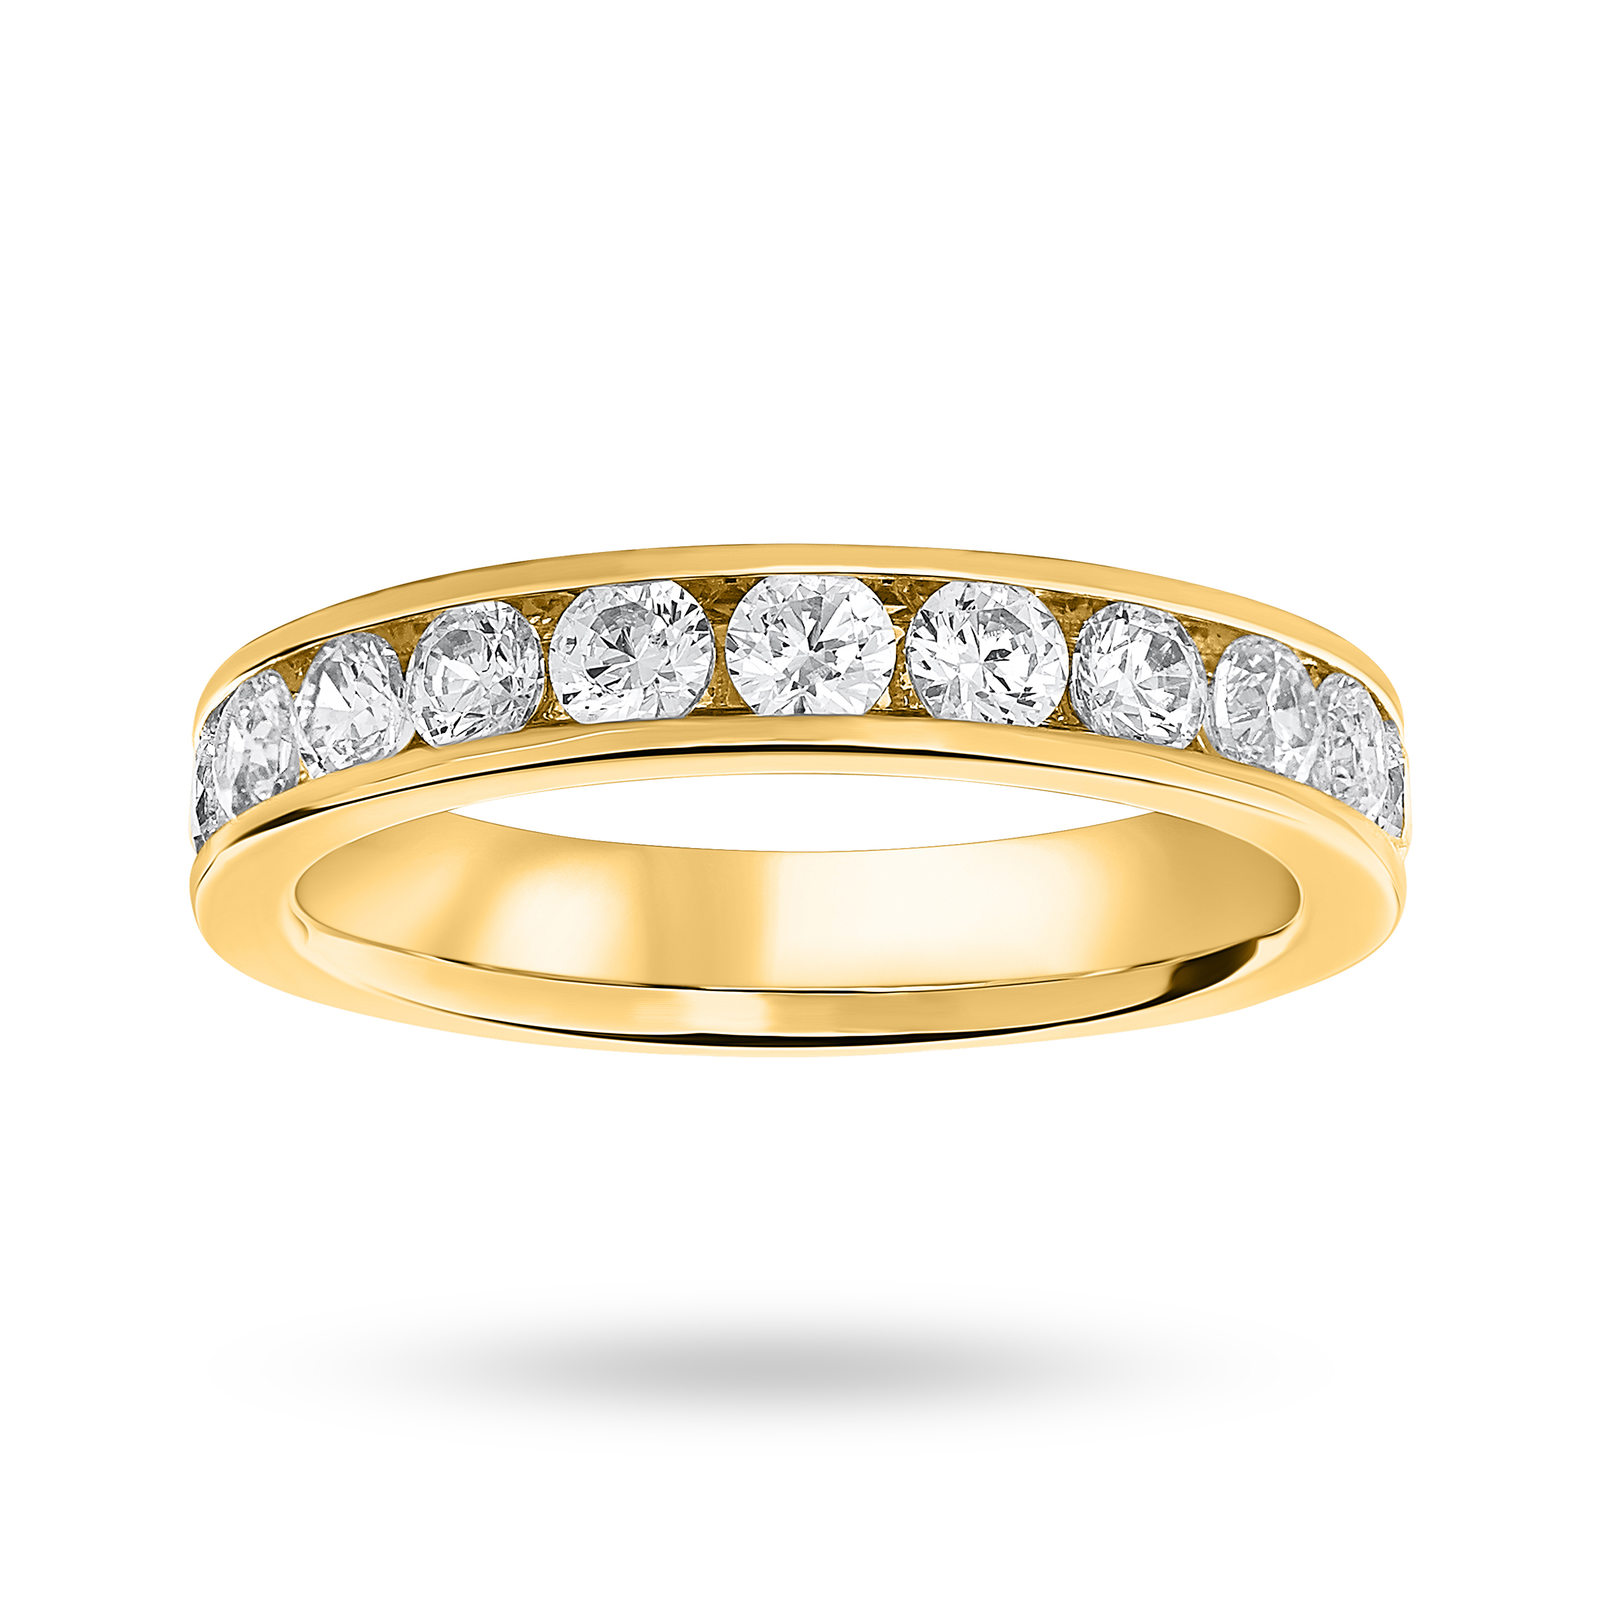 9 Carat Yellow Gold 1.00 Carat Brilliant Cut Half Eternity Ring